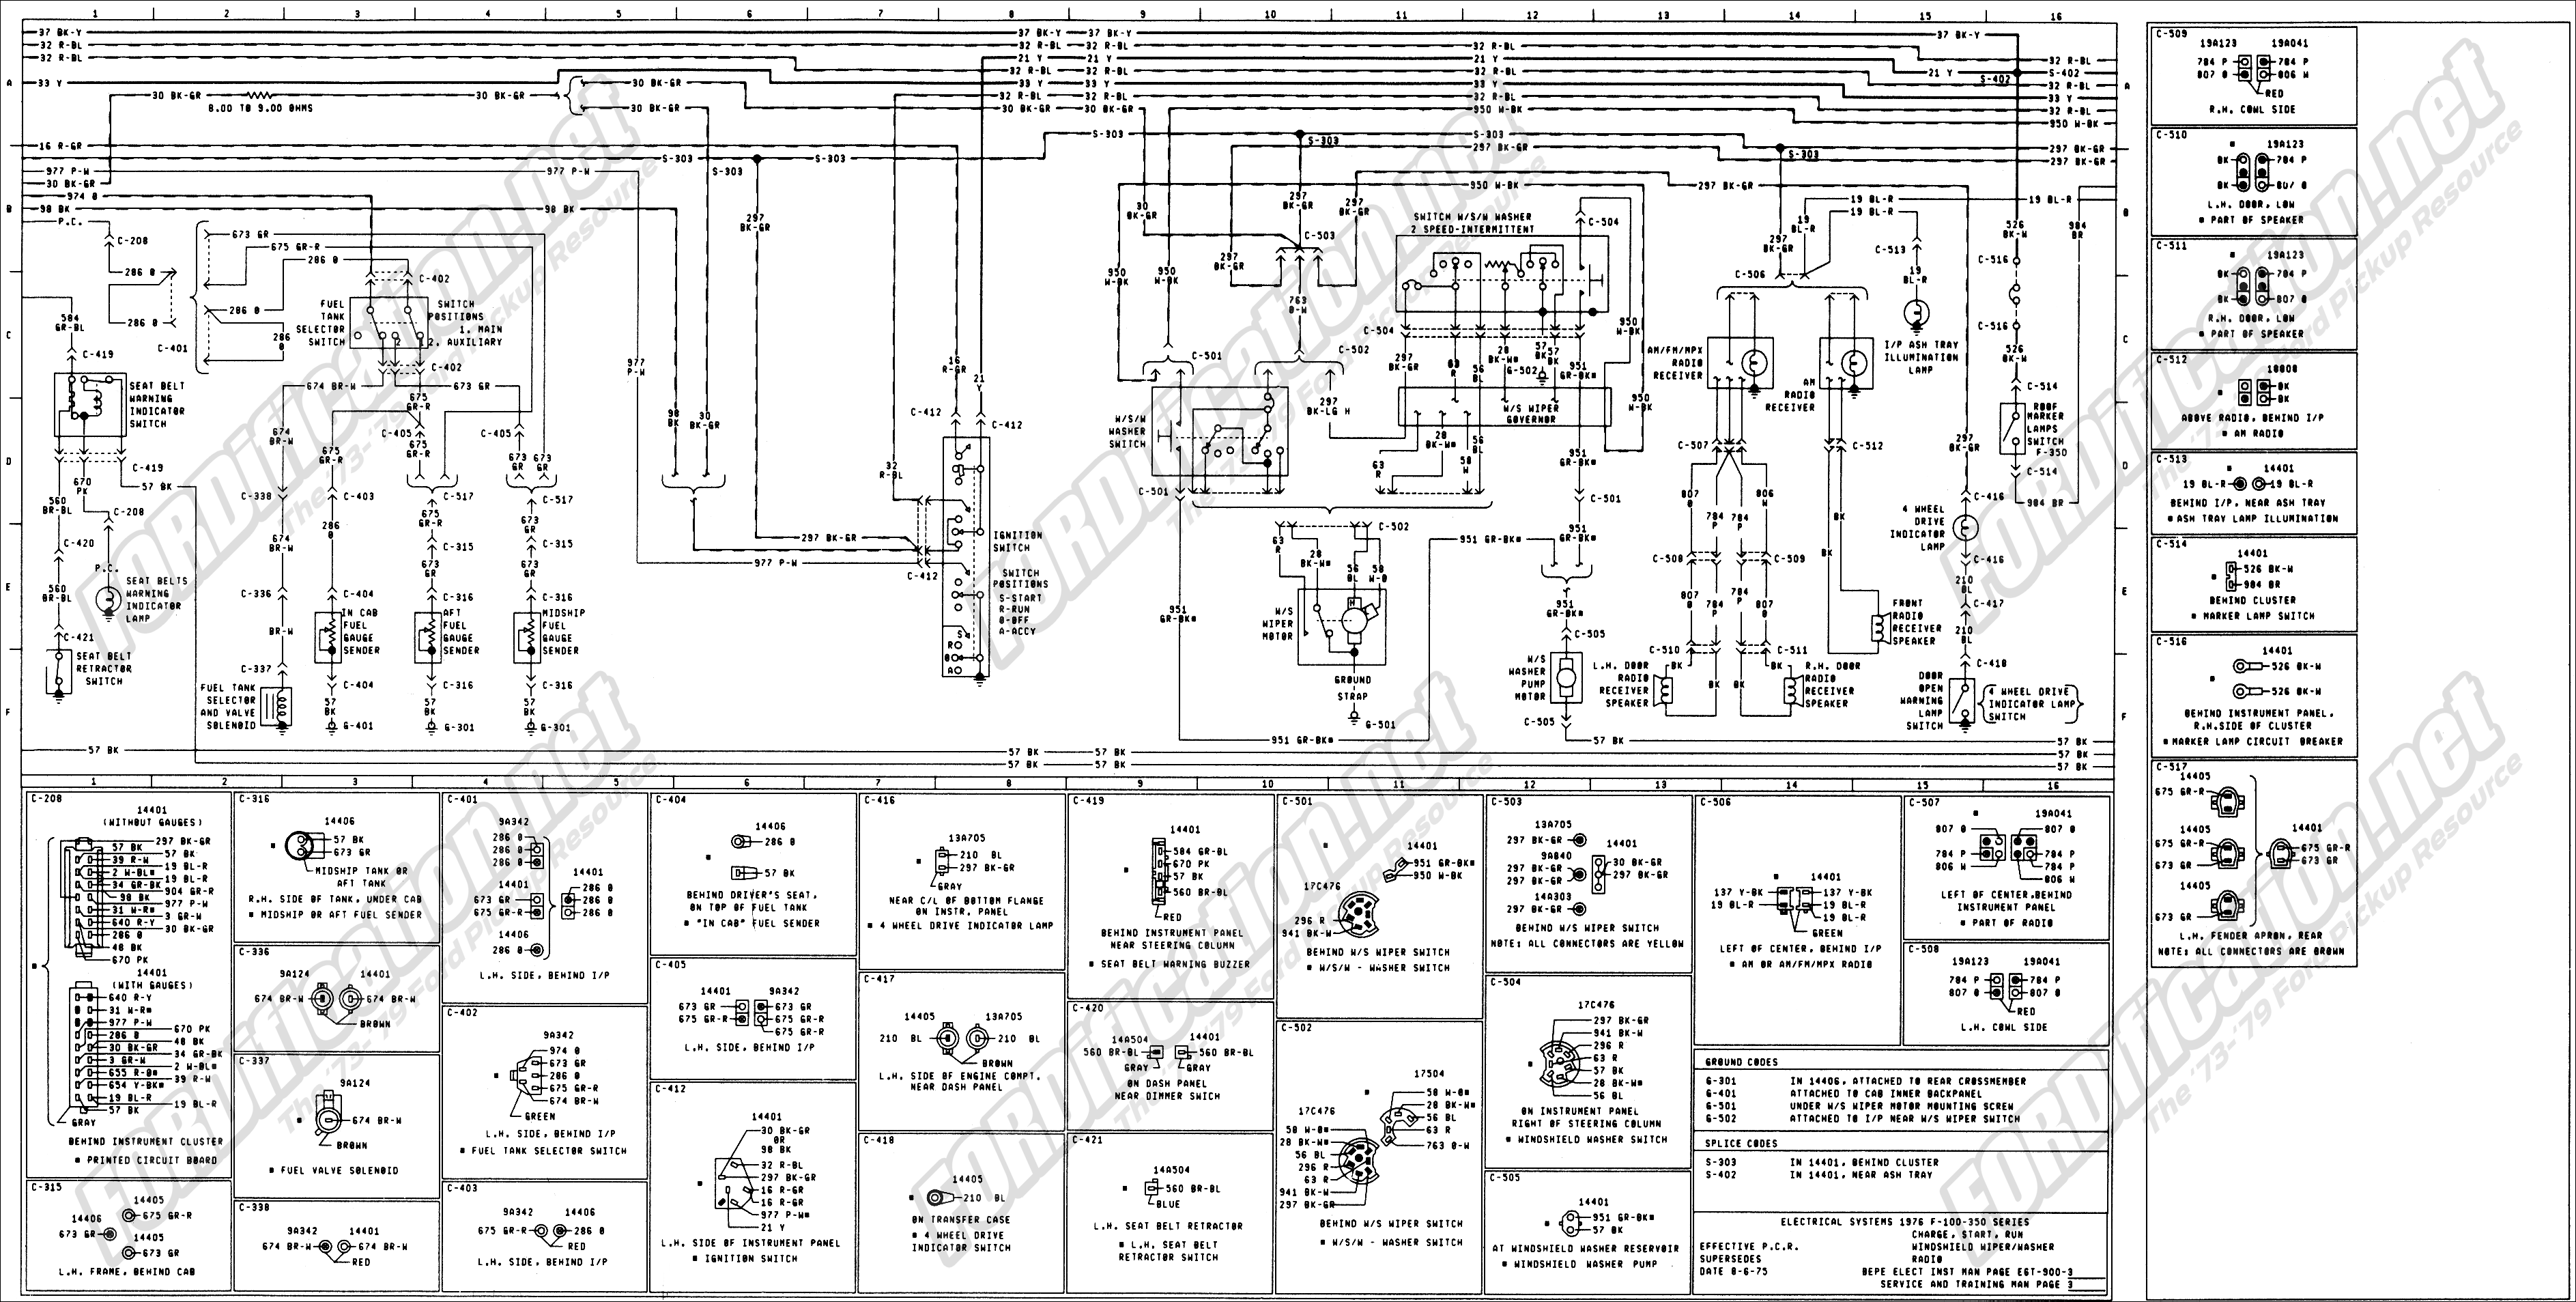 F100 Tail Light Wiring Diagram For 76 Guide And Troubleshooting Of Epc Novyc Leds 1973 1979 Ford Truck Diagrams Schematics Fordification Net Rh Chevy Gmc